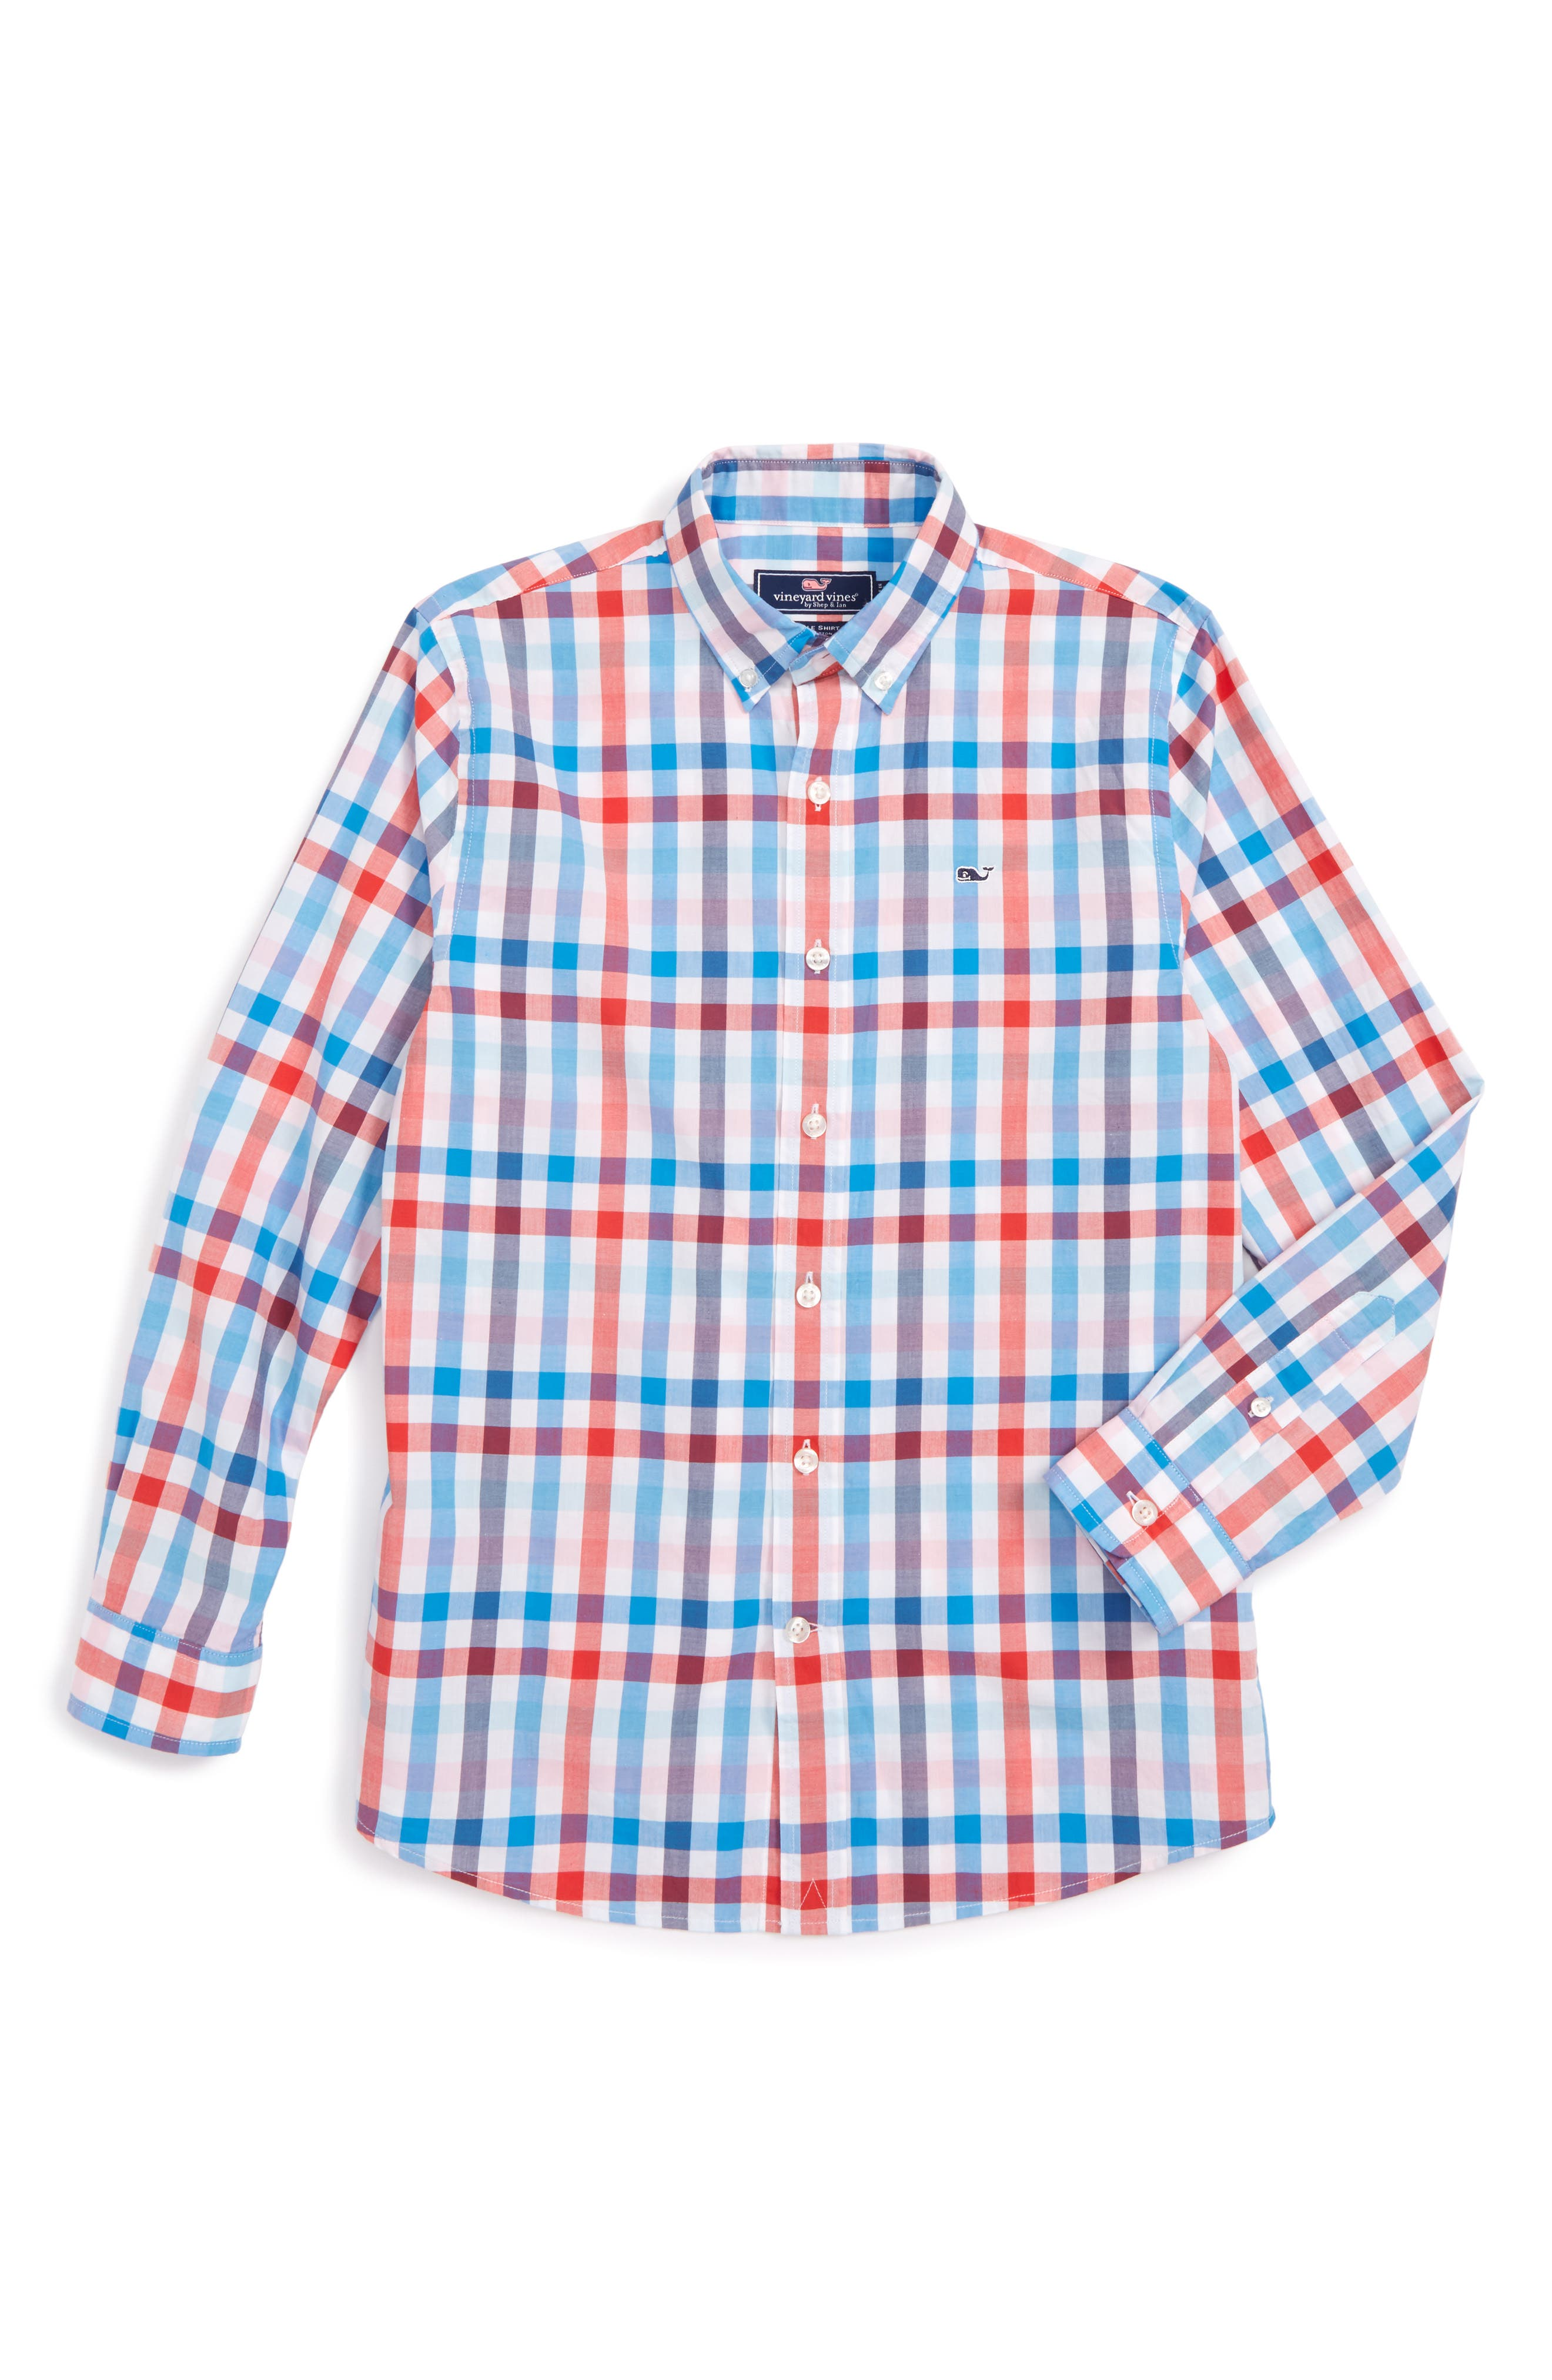 Chalwell Gingham Whale Shirt,                             Main thumbnail 1, color,                             615